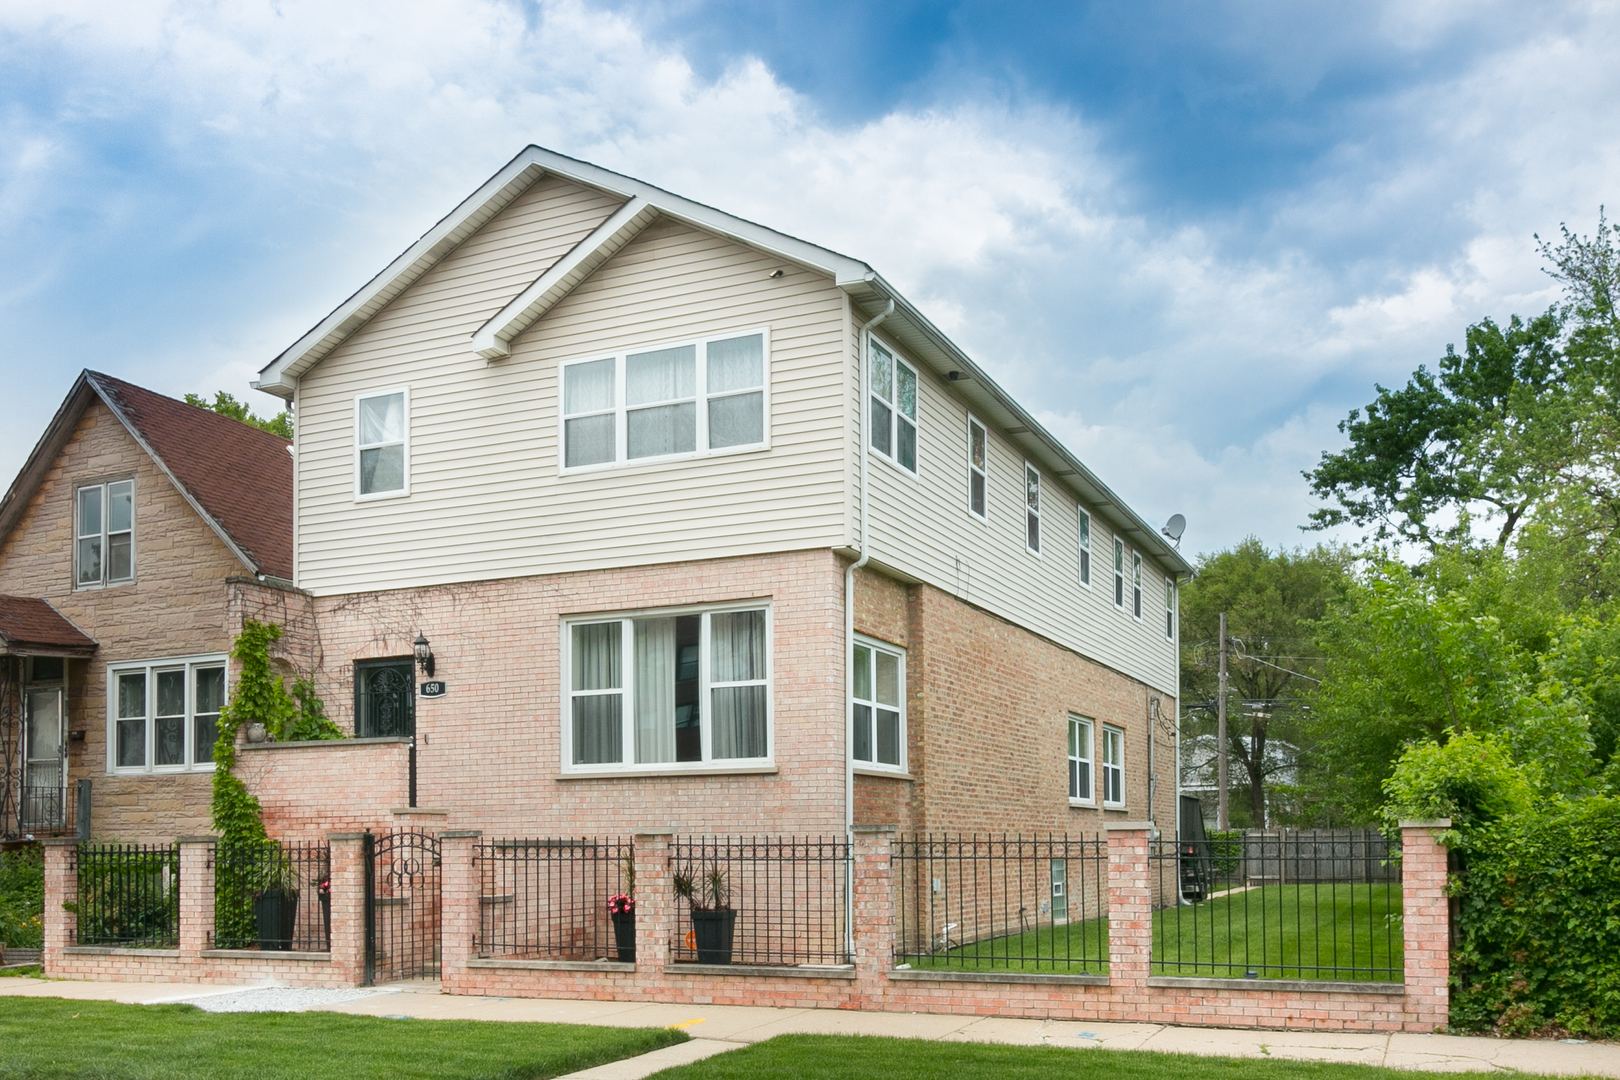 650 EAST 91ST STREET, CHICAGO, IL 60619